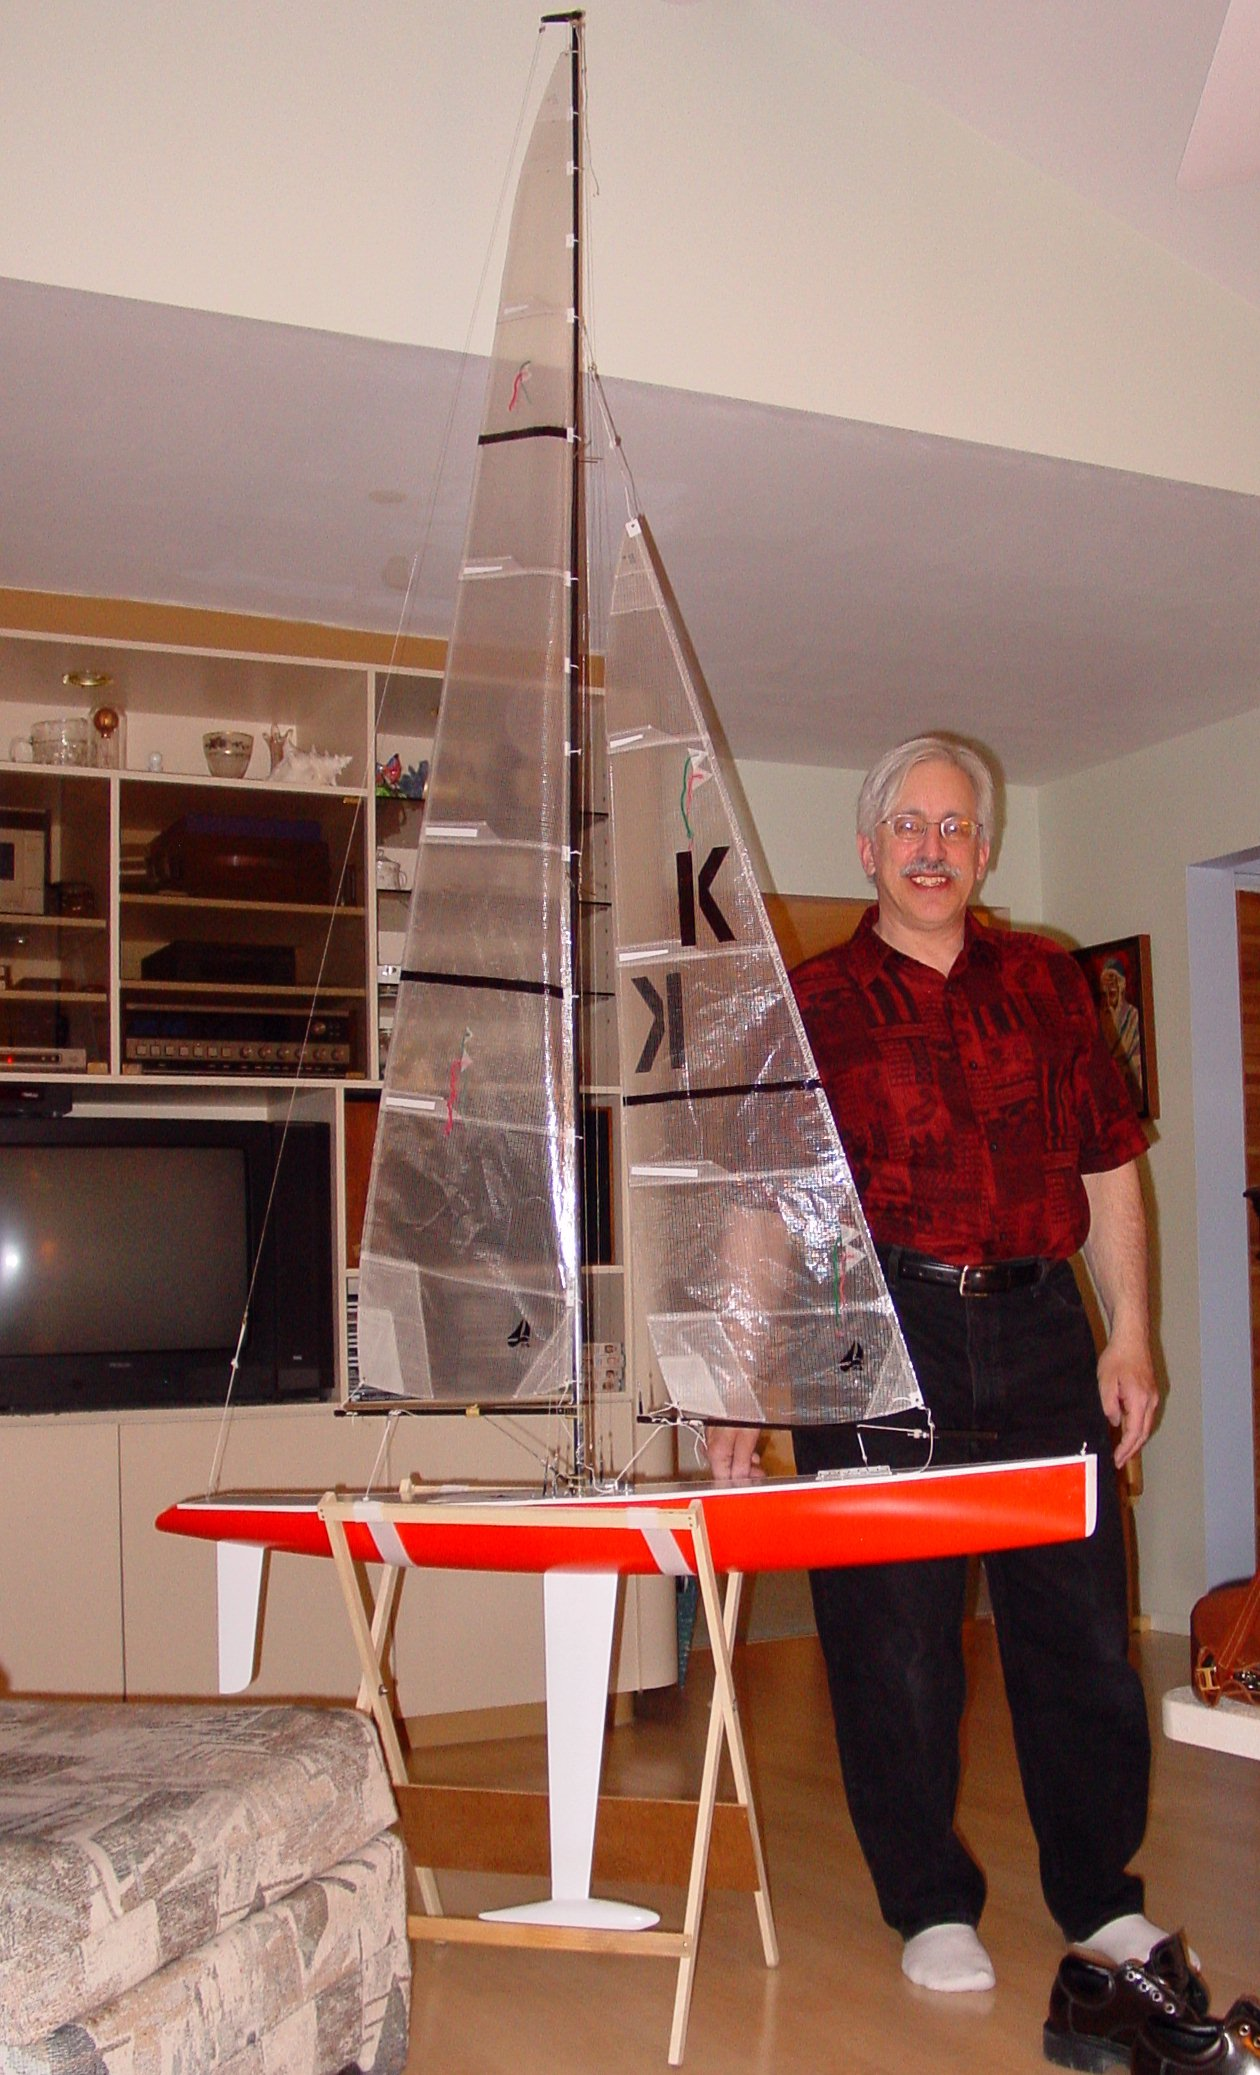 Me and the 50 (Marblehead) RC sailboat.